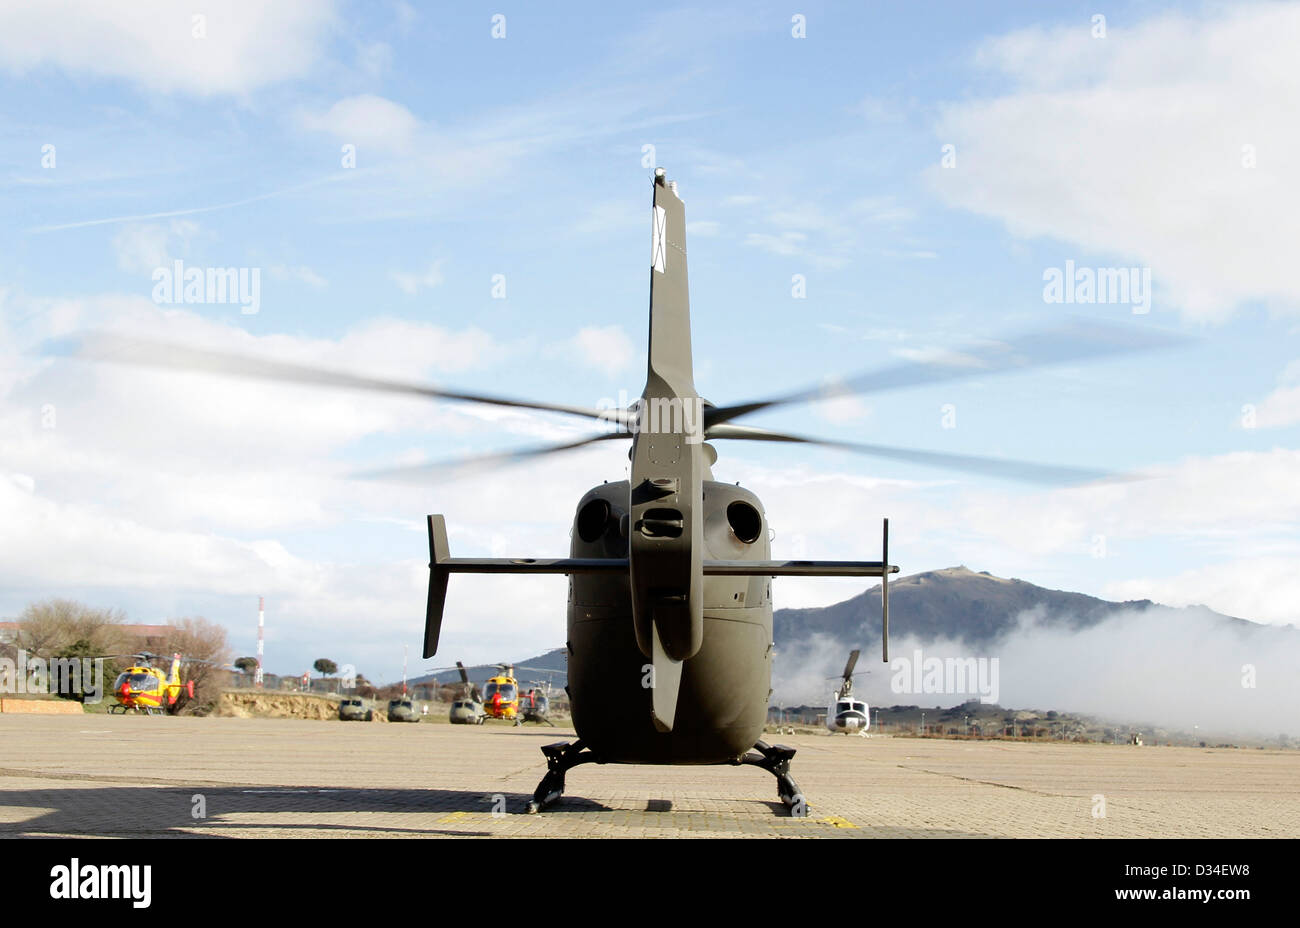 Rear view of military helicopter - Stock Image